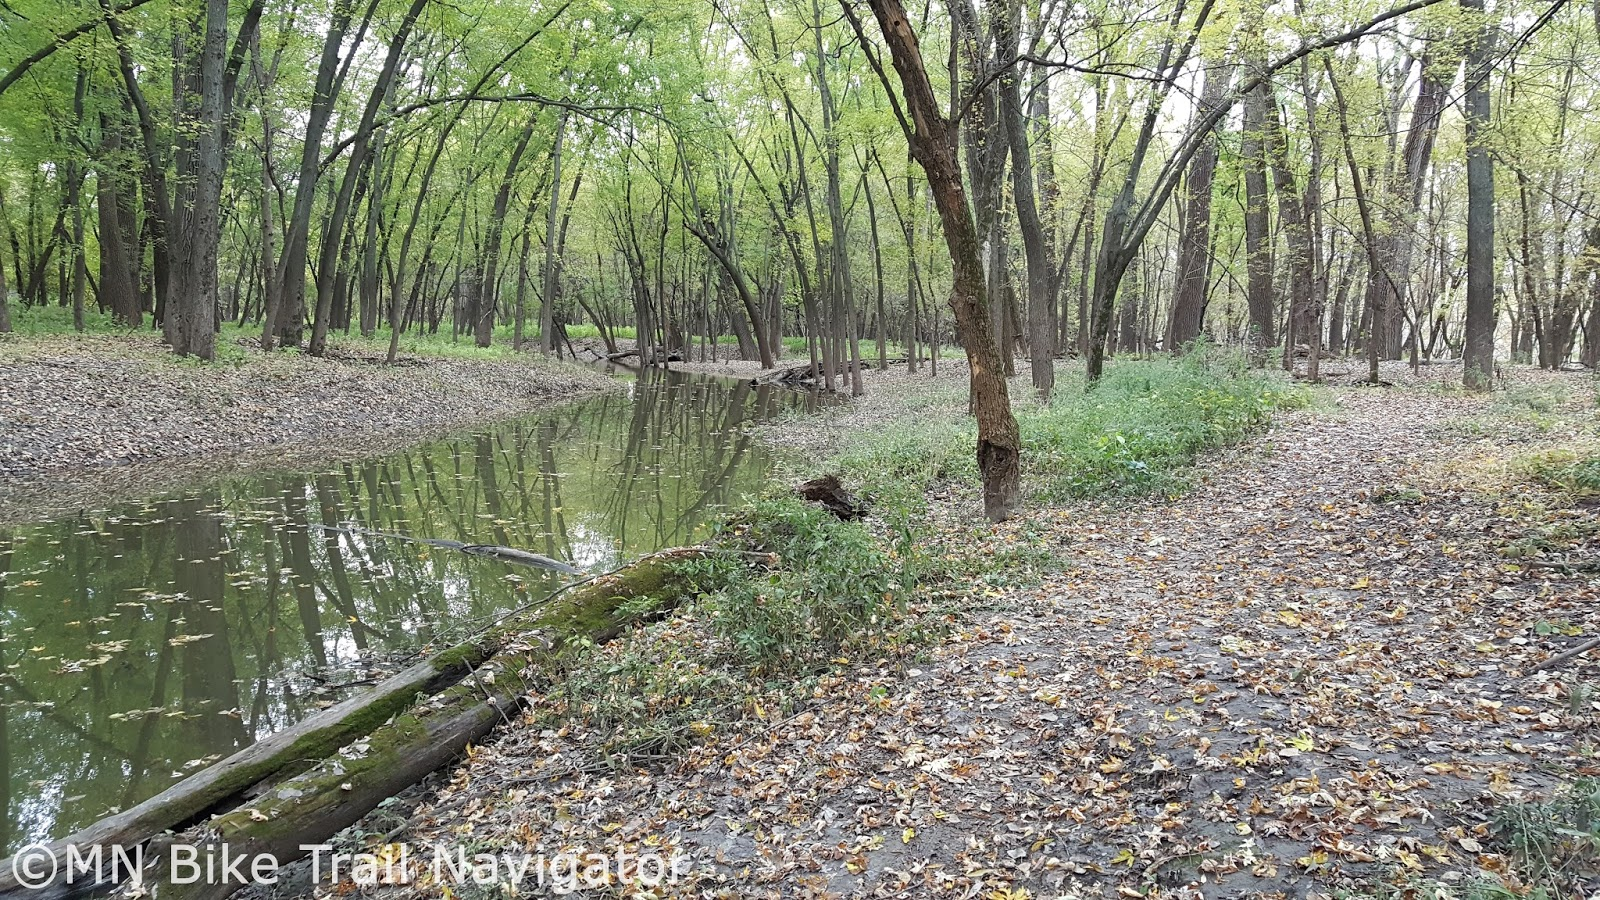 Mn Bike Trail Navigator Mn River Bottoms Flooding Update